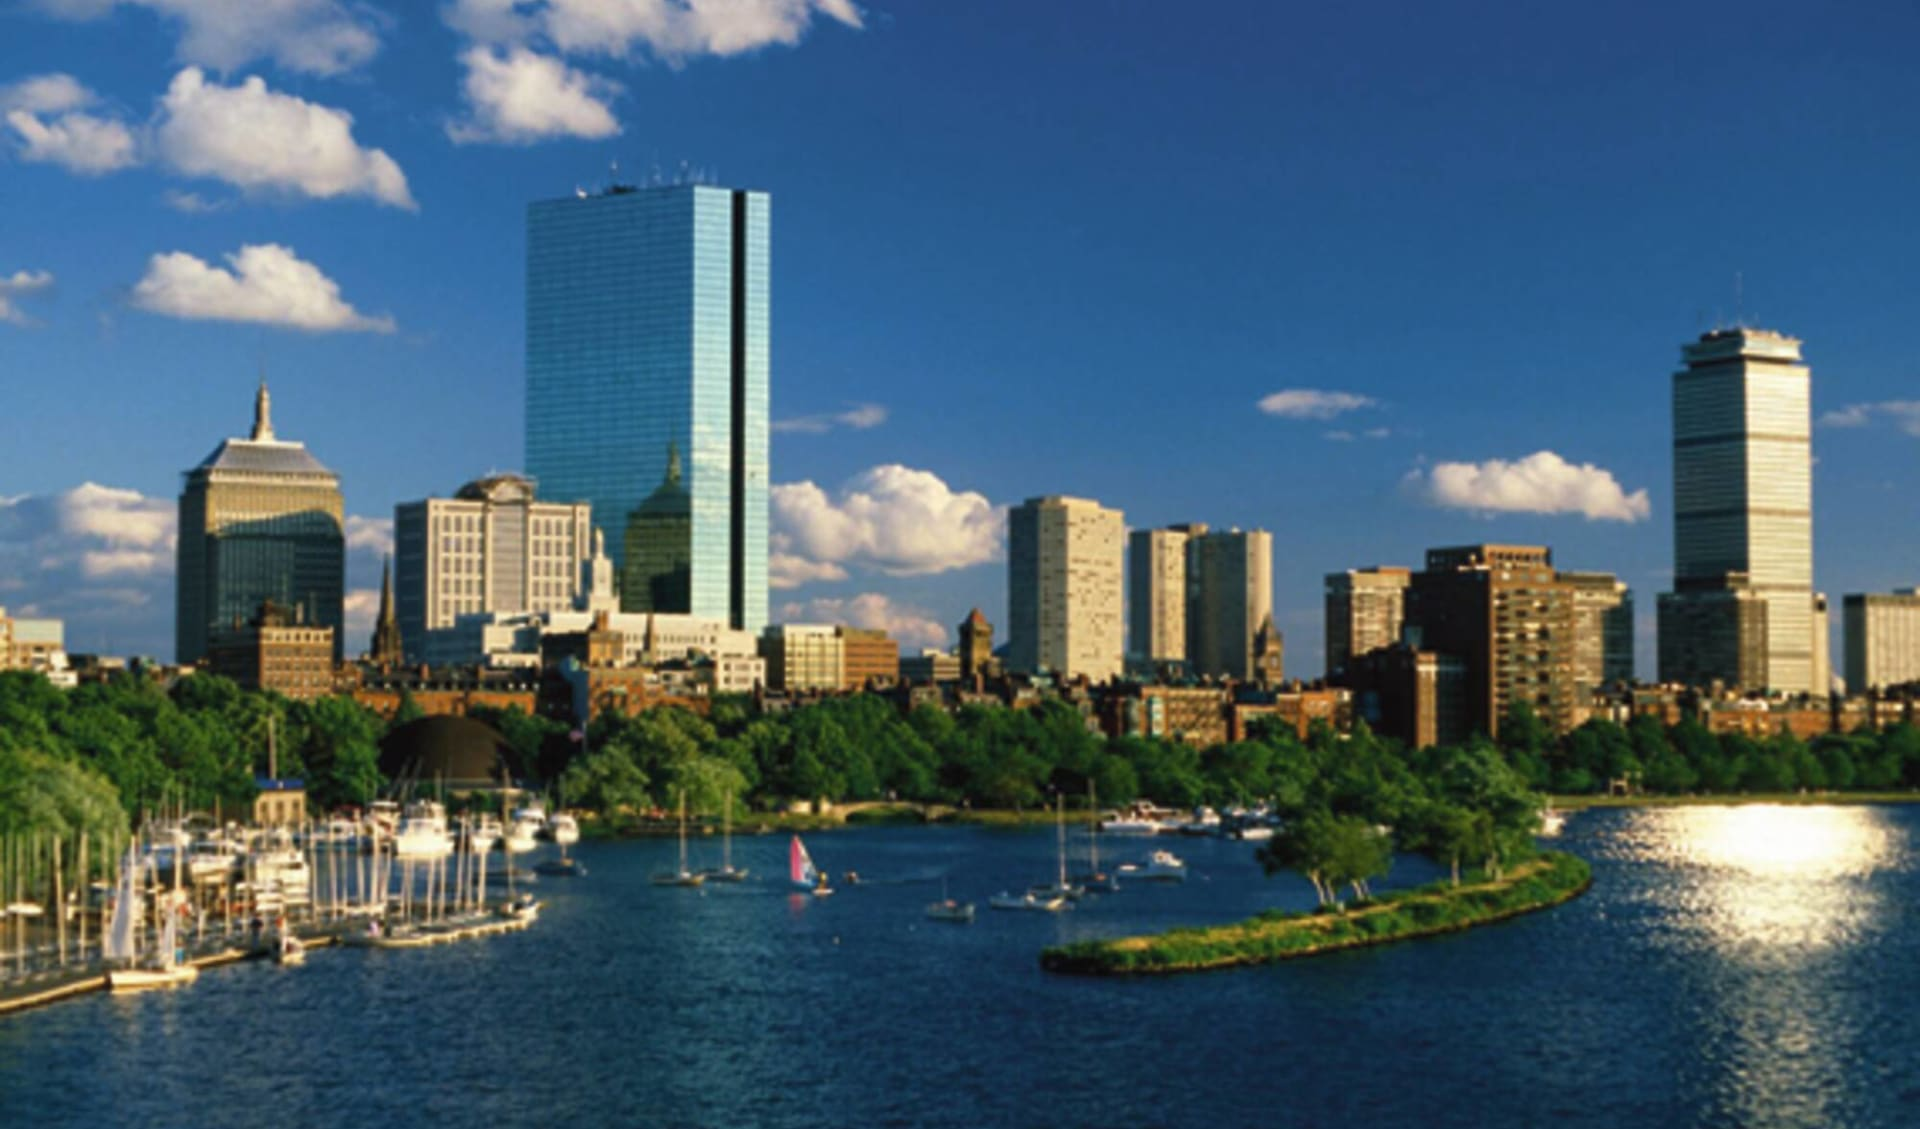 Charming New England ab Boston: USA - Massachusetts - Boston Skyline